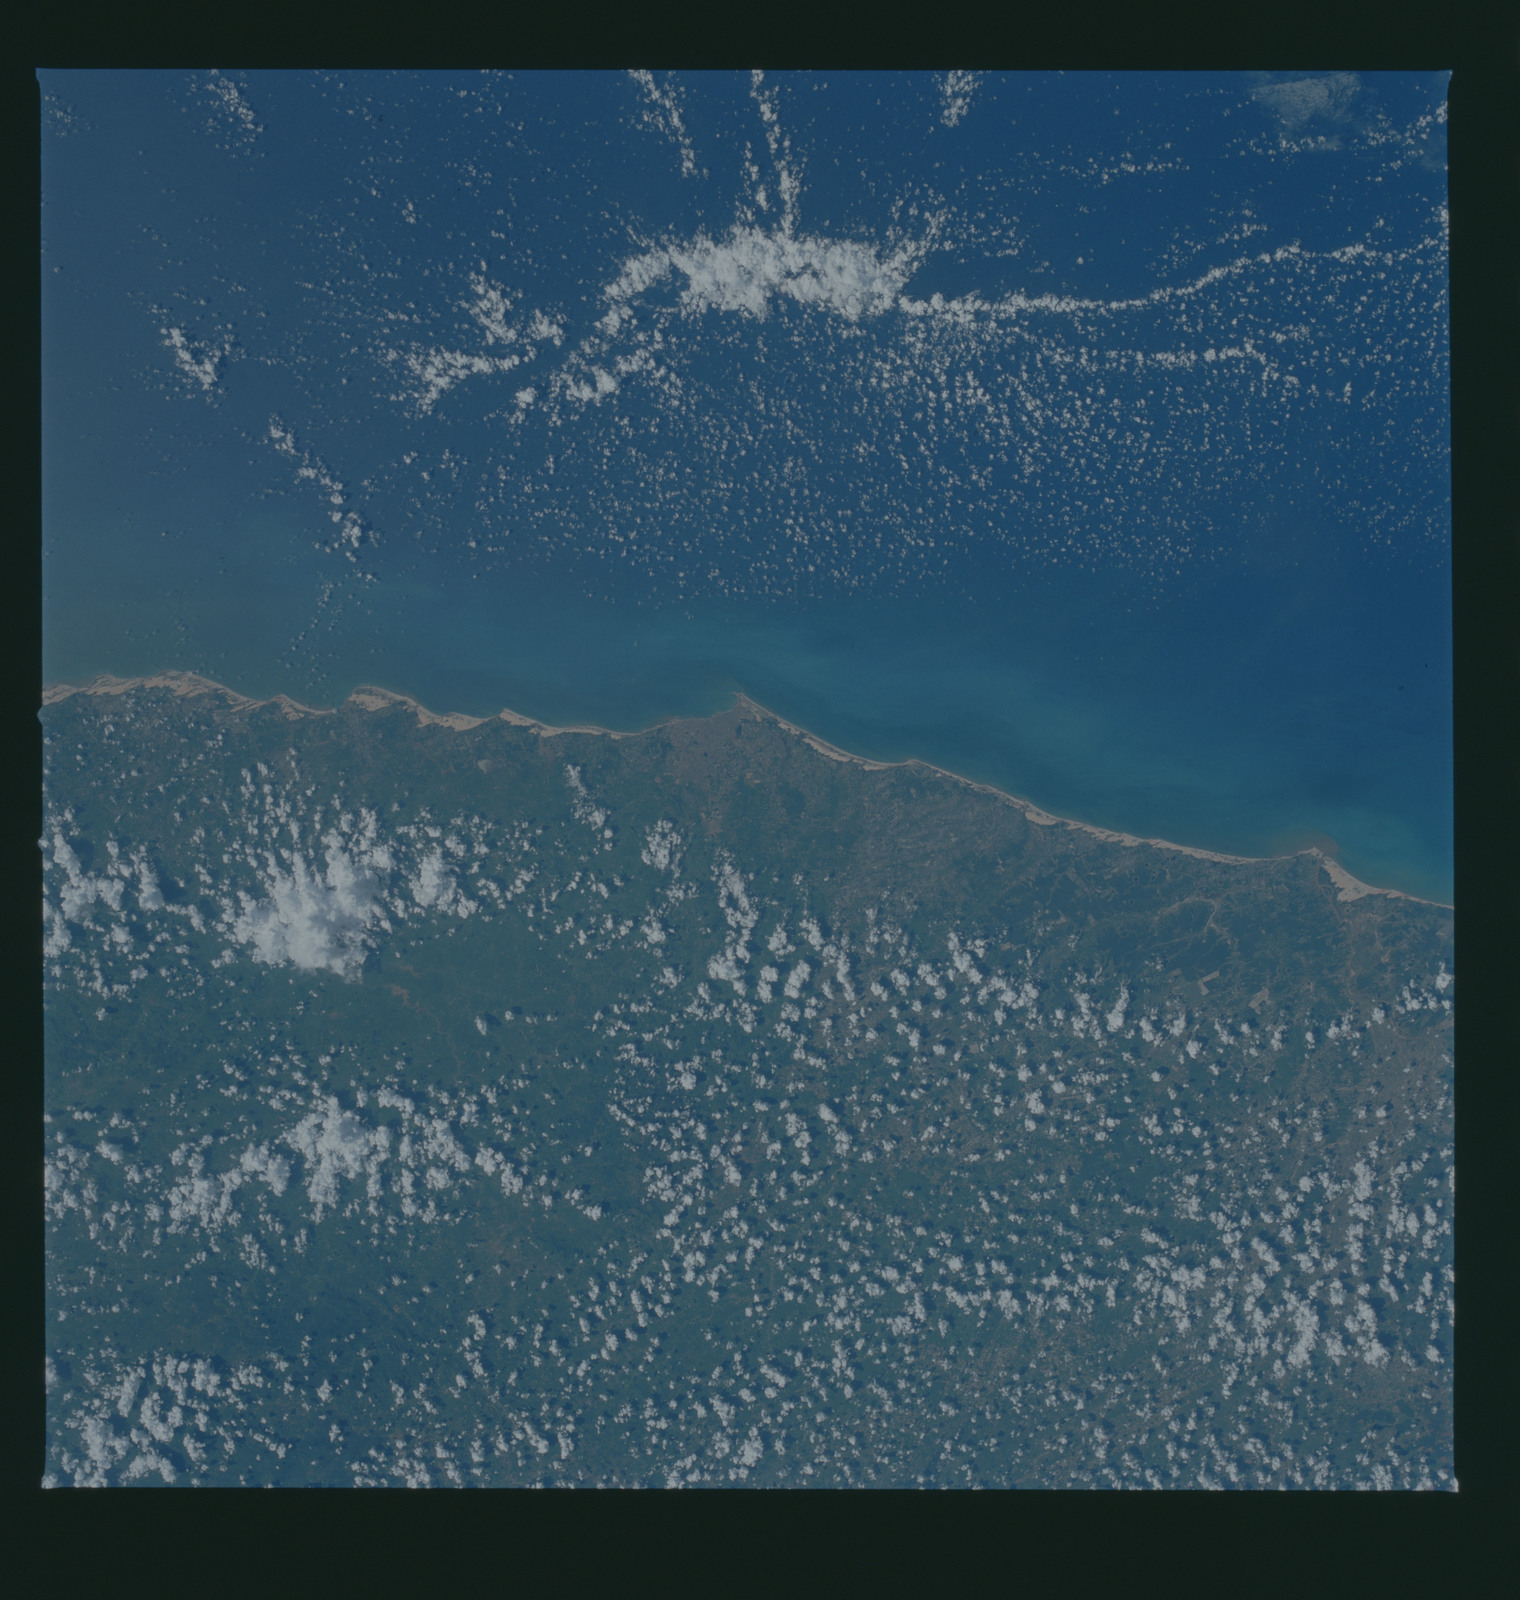 S37-94-007 - STS-037 - Earth observations taken from OV-104 during STS-37 mission